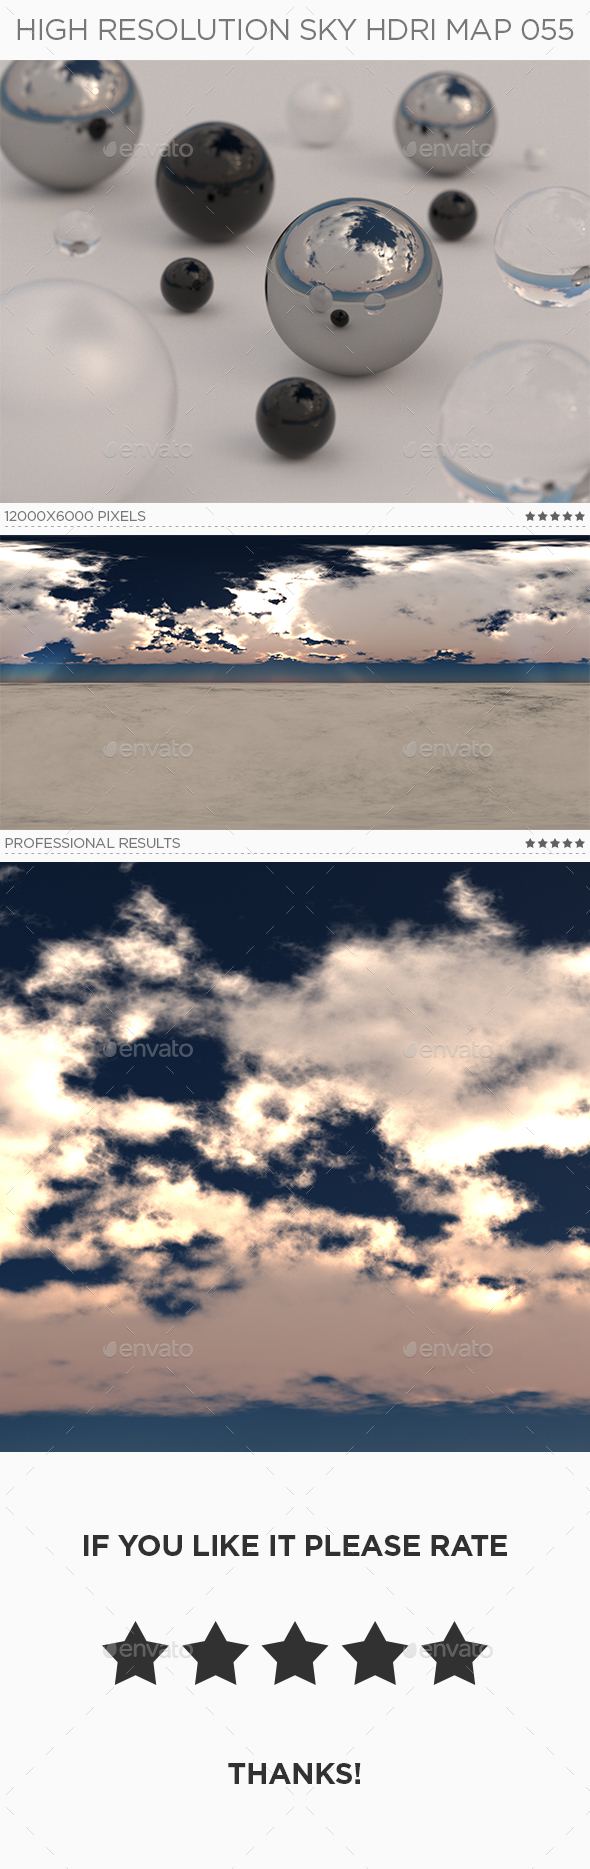 High Resolution Sky HDRi Map 055 - 3DOcean Item for Sale